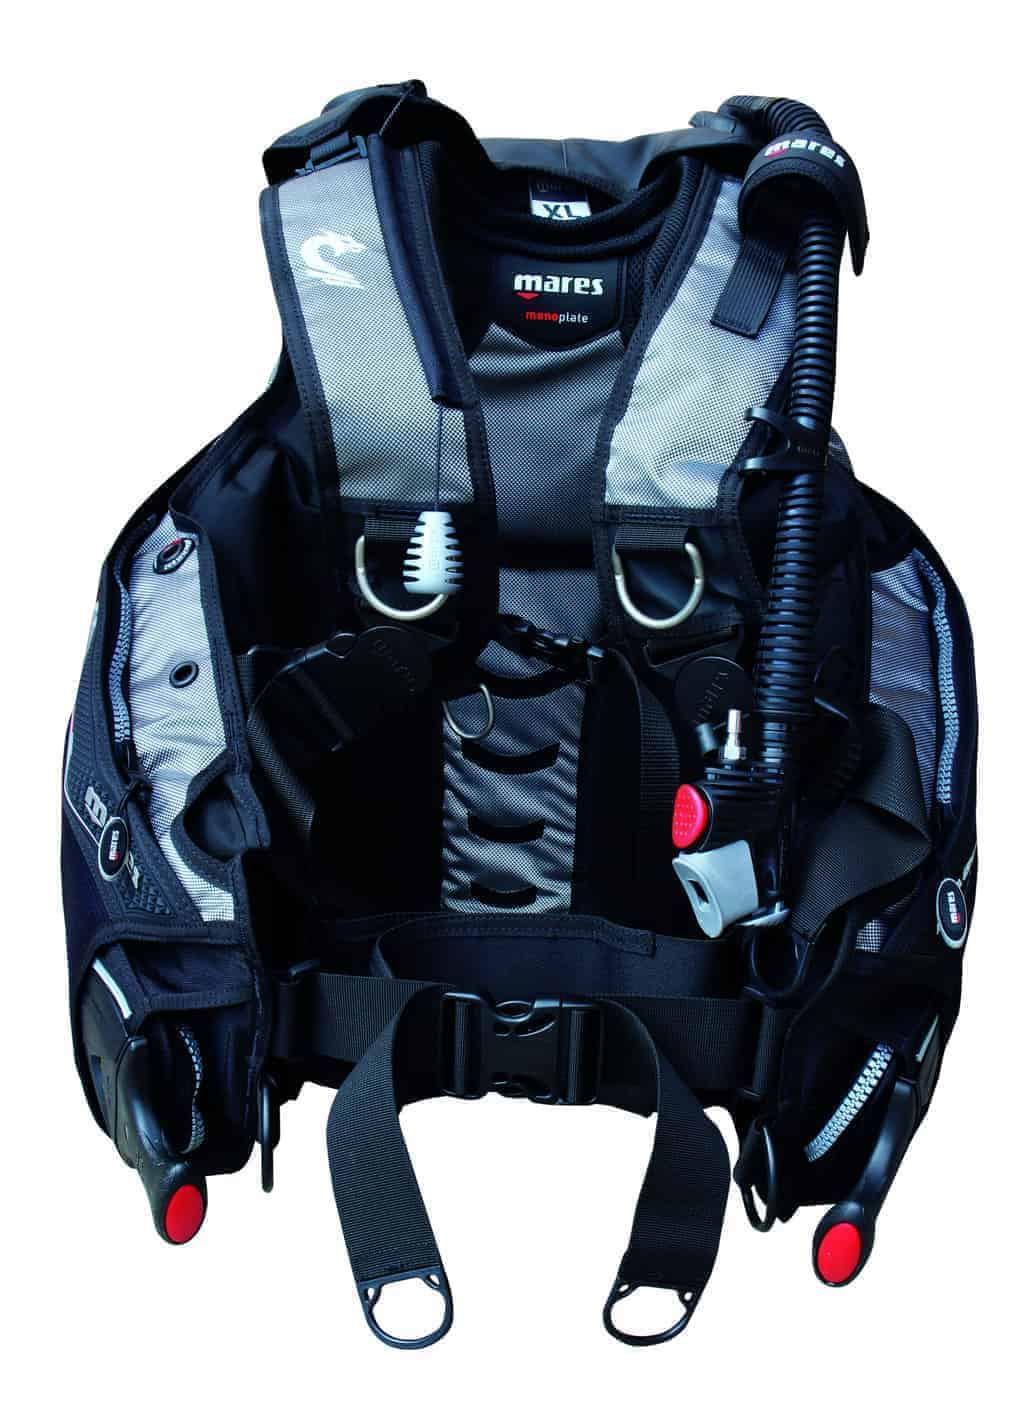 The Dragon SLS sits near the top of our price bracket, but you do get a lot of BCD for your money.